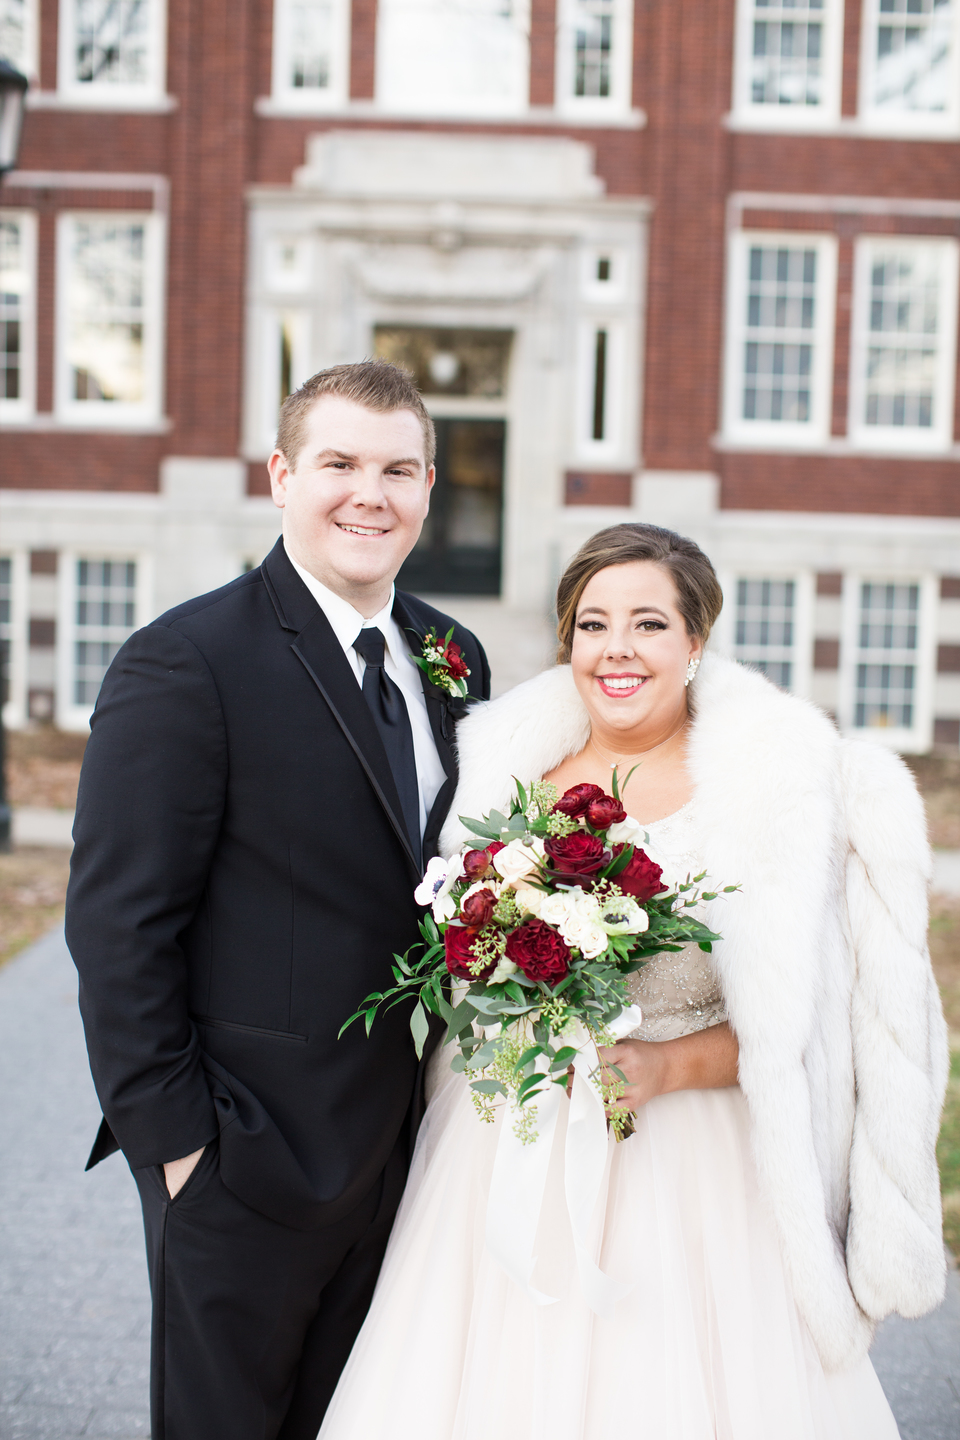 09. Erika Dotson Photgraphy. Rose of Sharon Floral Designs. blush & burgundy wedding.jpg